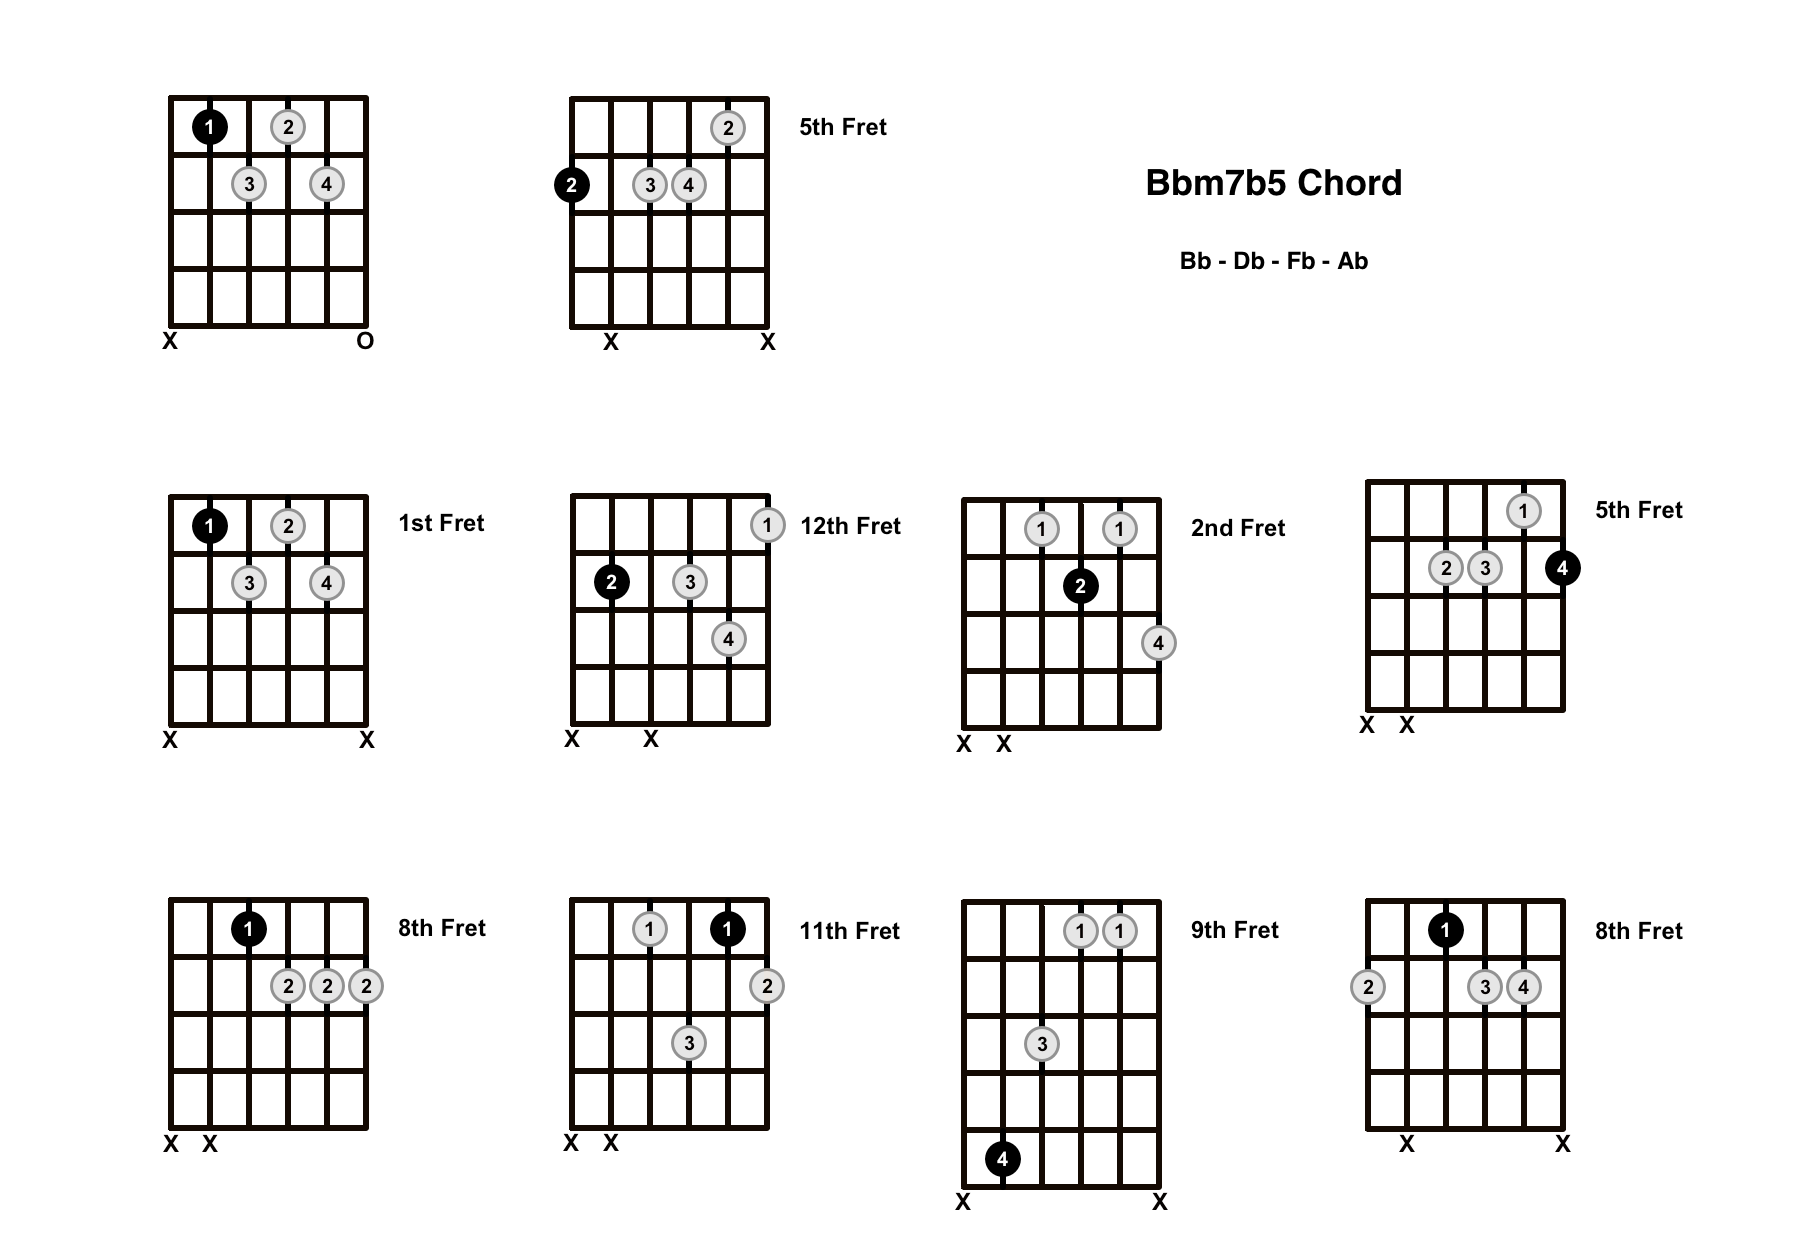 Bbm7b5 Chord On The Guitar (B Flat Minor 7 Flat 5, B Flat Half Diminished) – Diagrams, Finger Positions and Theory